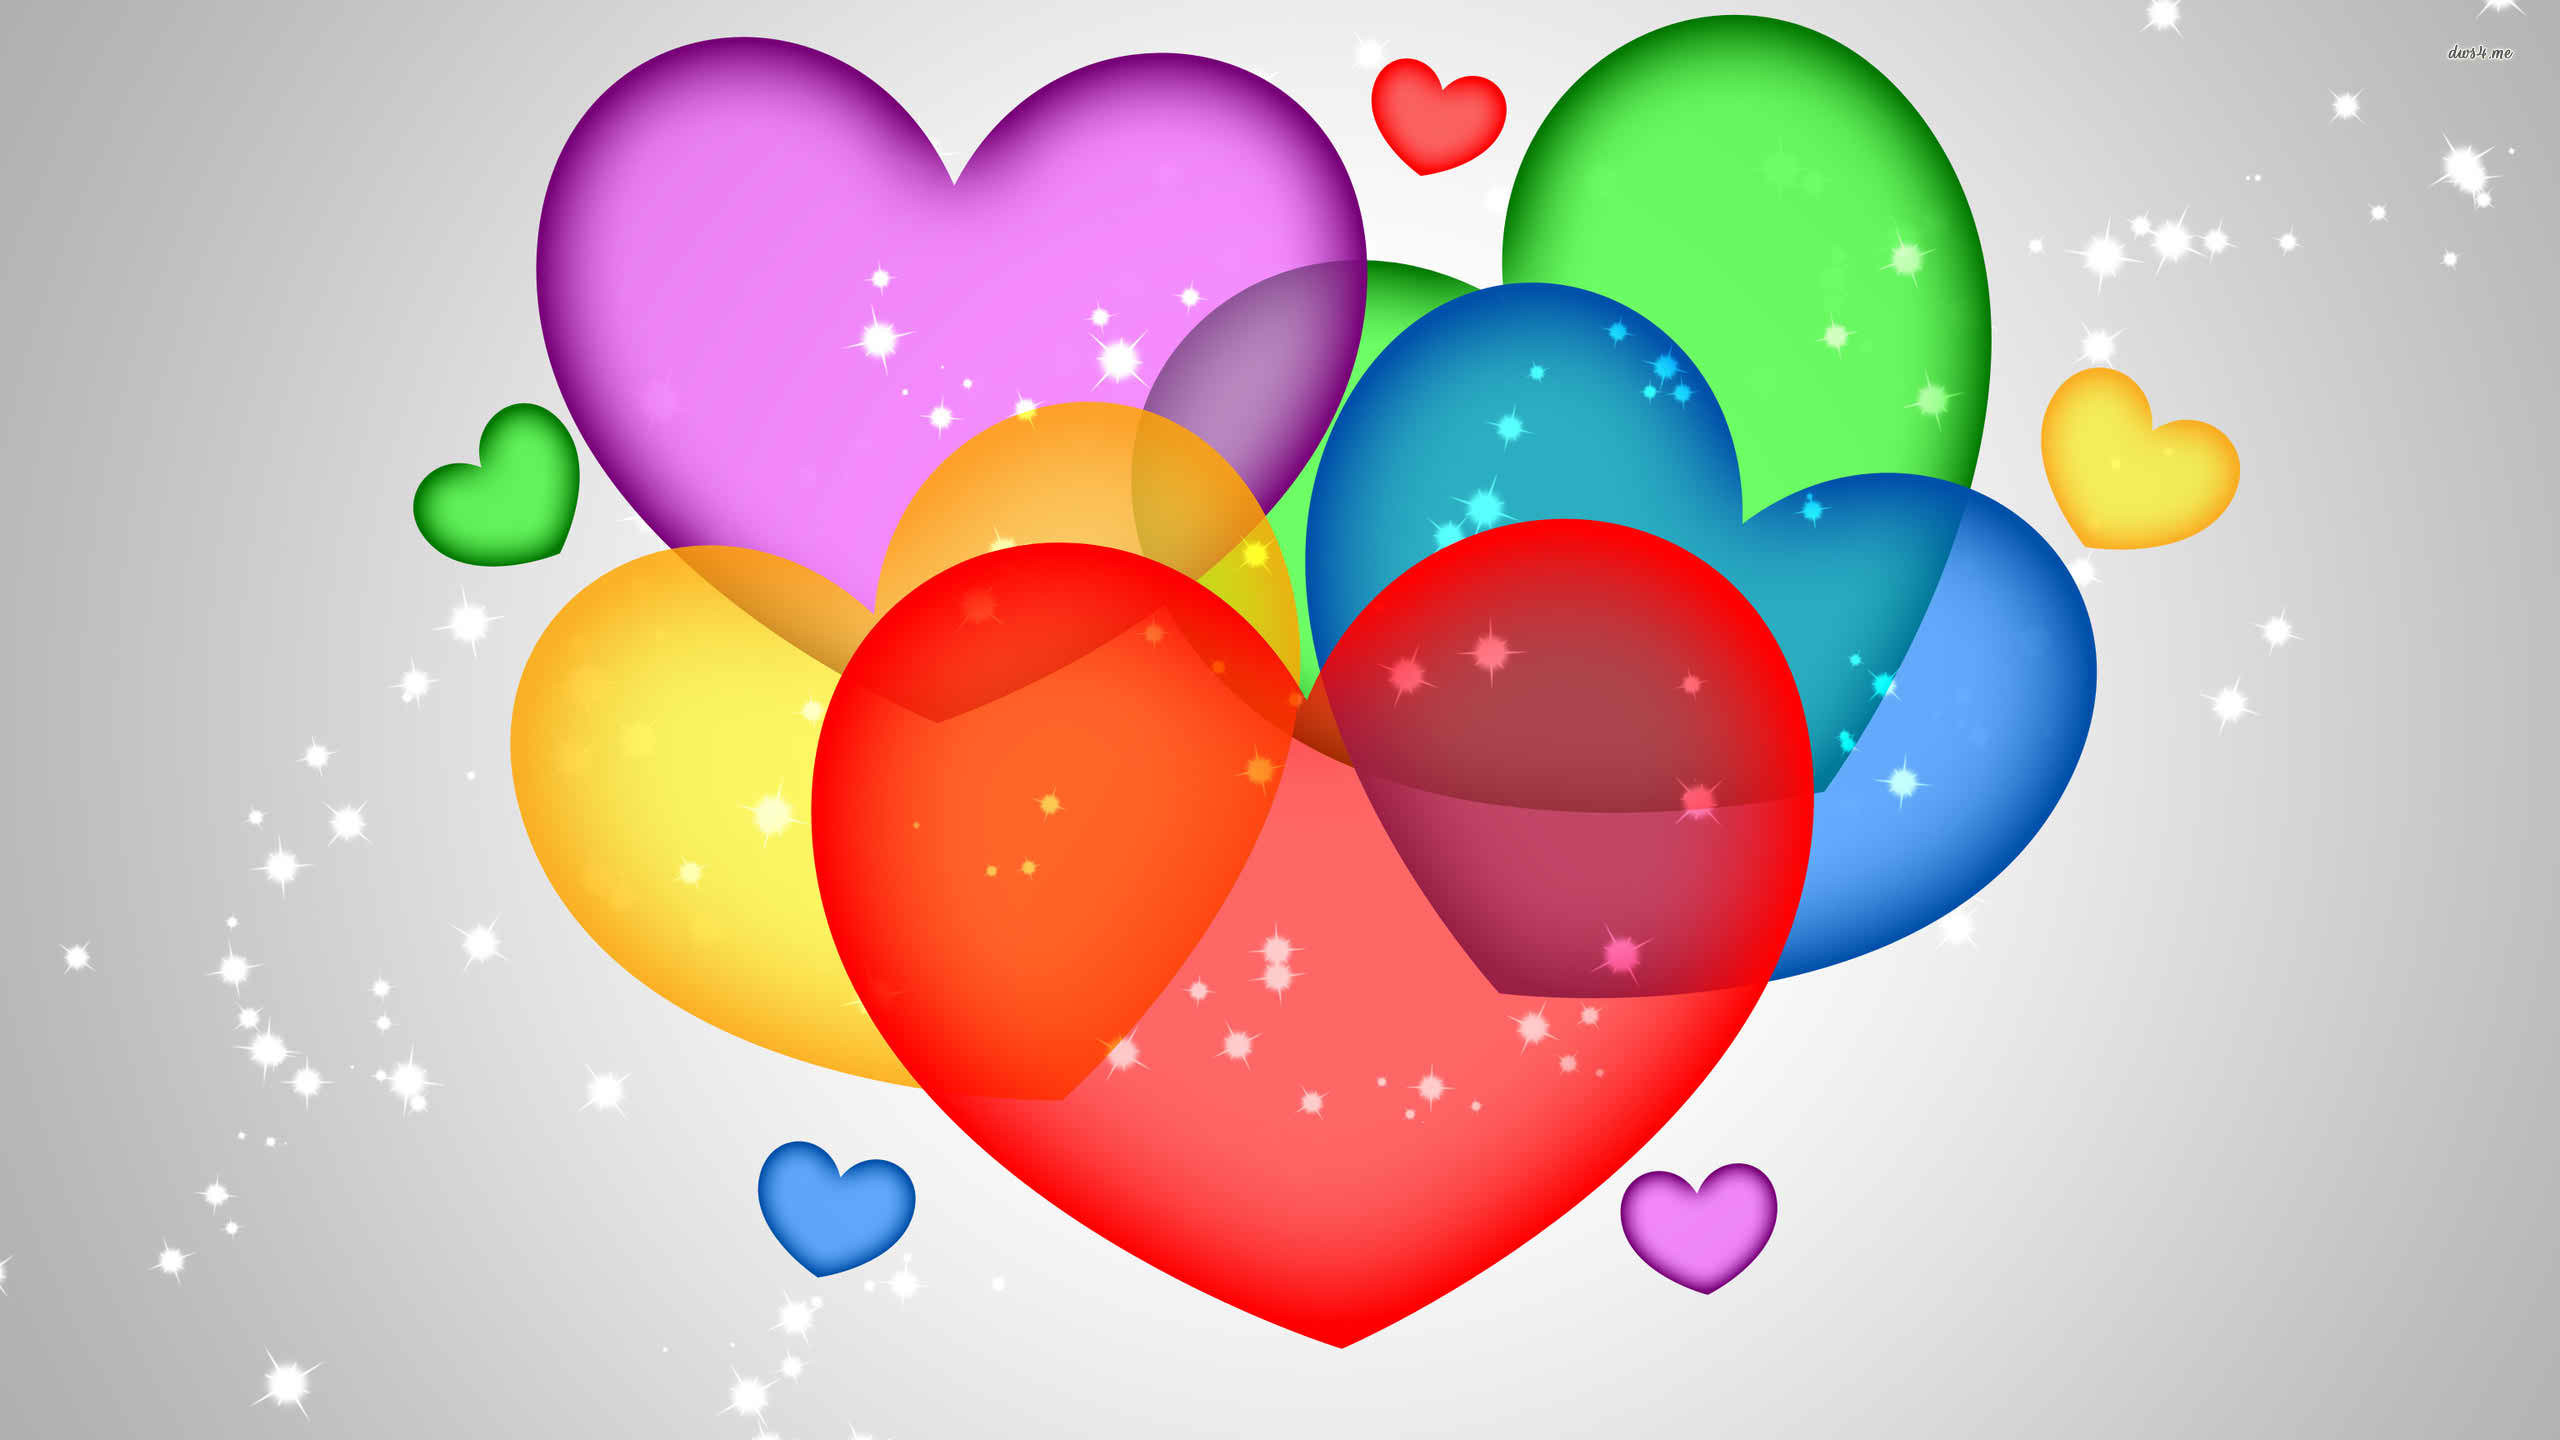 2560x1440 Colorful Hearts Wallpaper 1080p #Owi